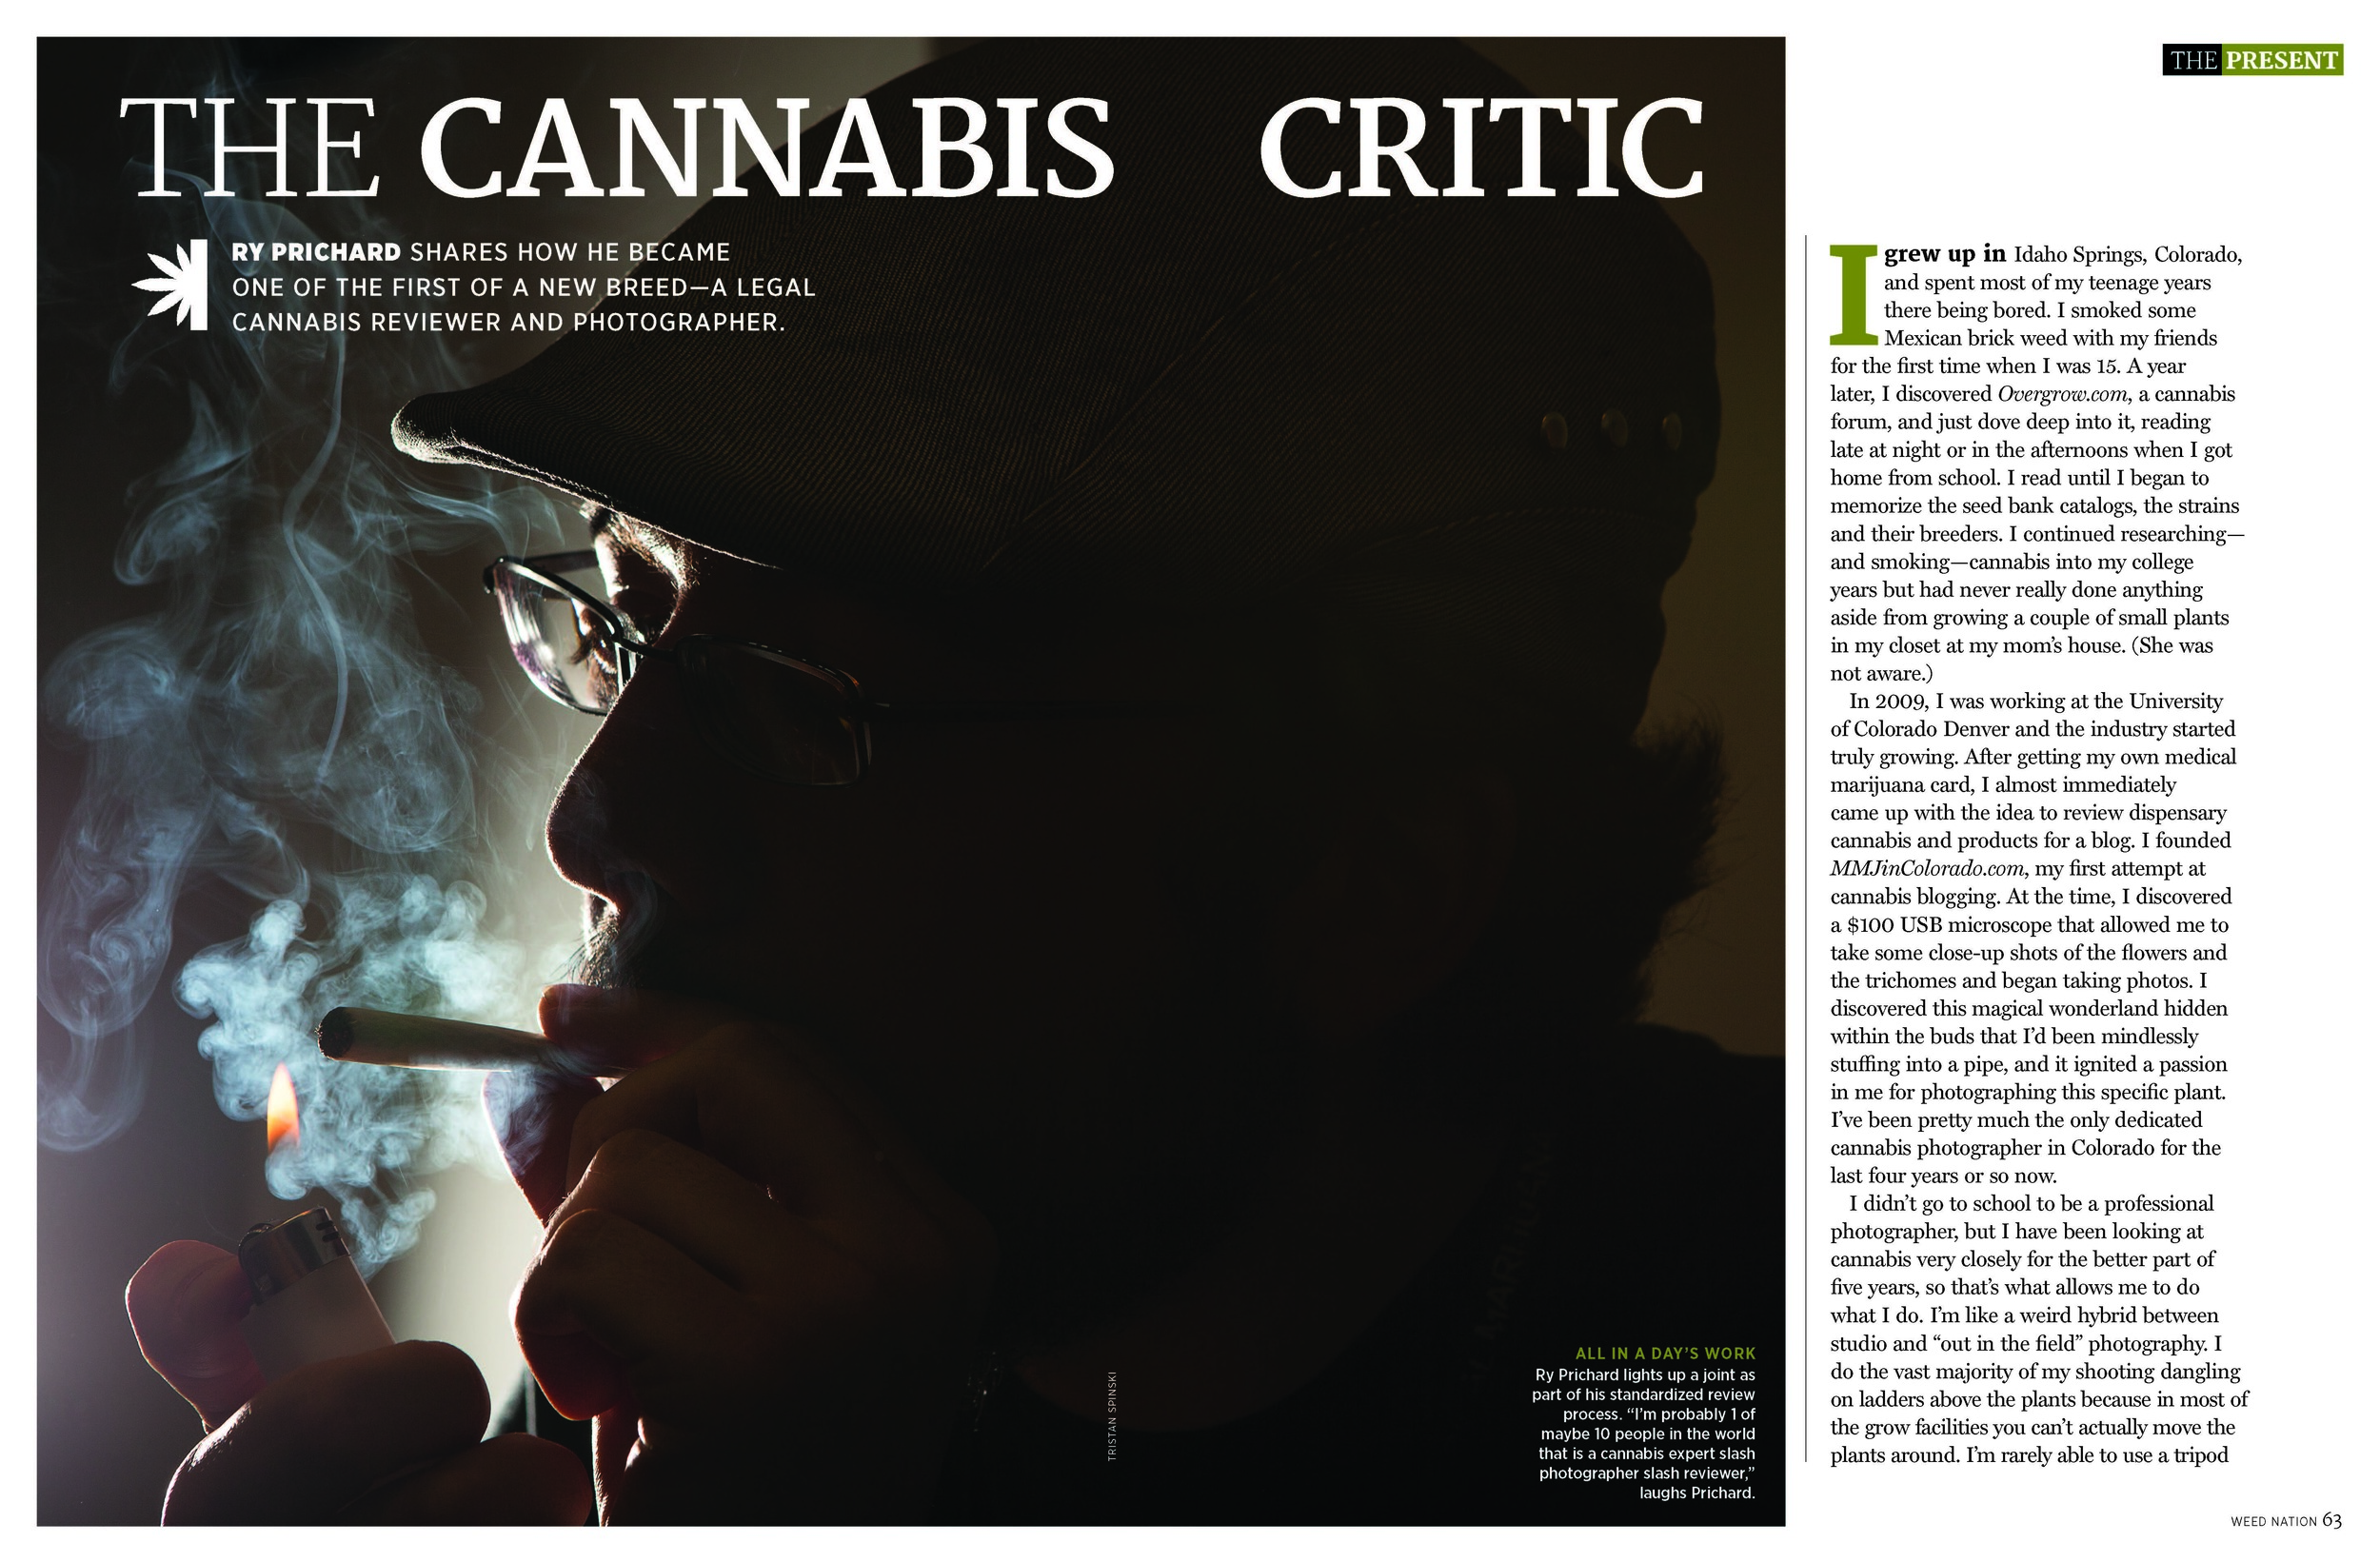 """Weed Nation: """"The Cannabis Critic"""" - Newsweek Special Edition, Feb '15"""